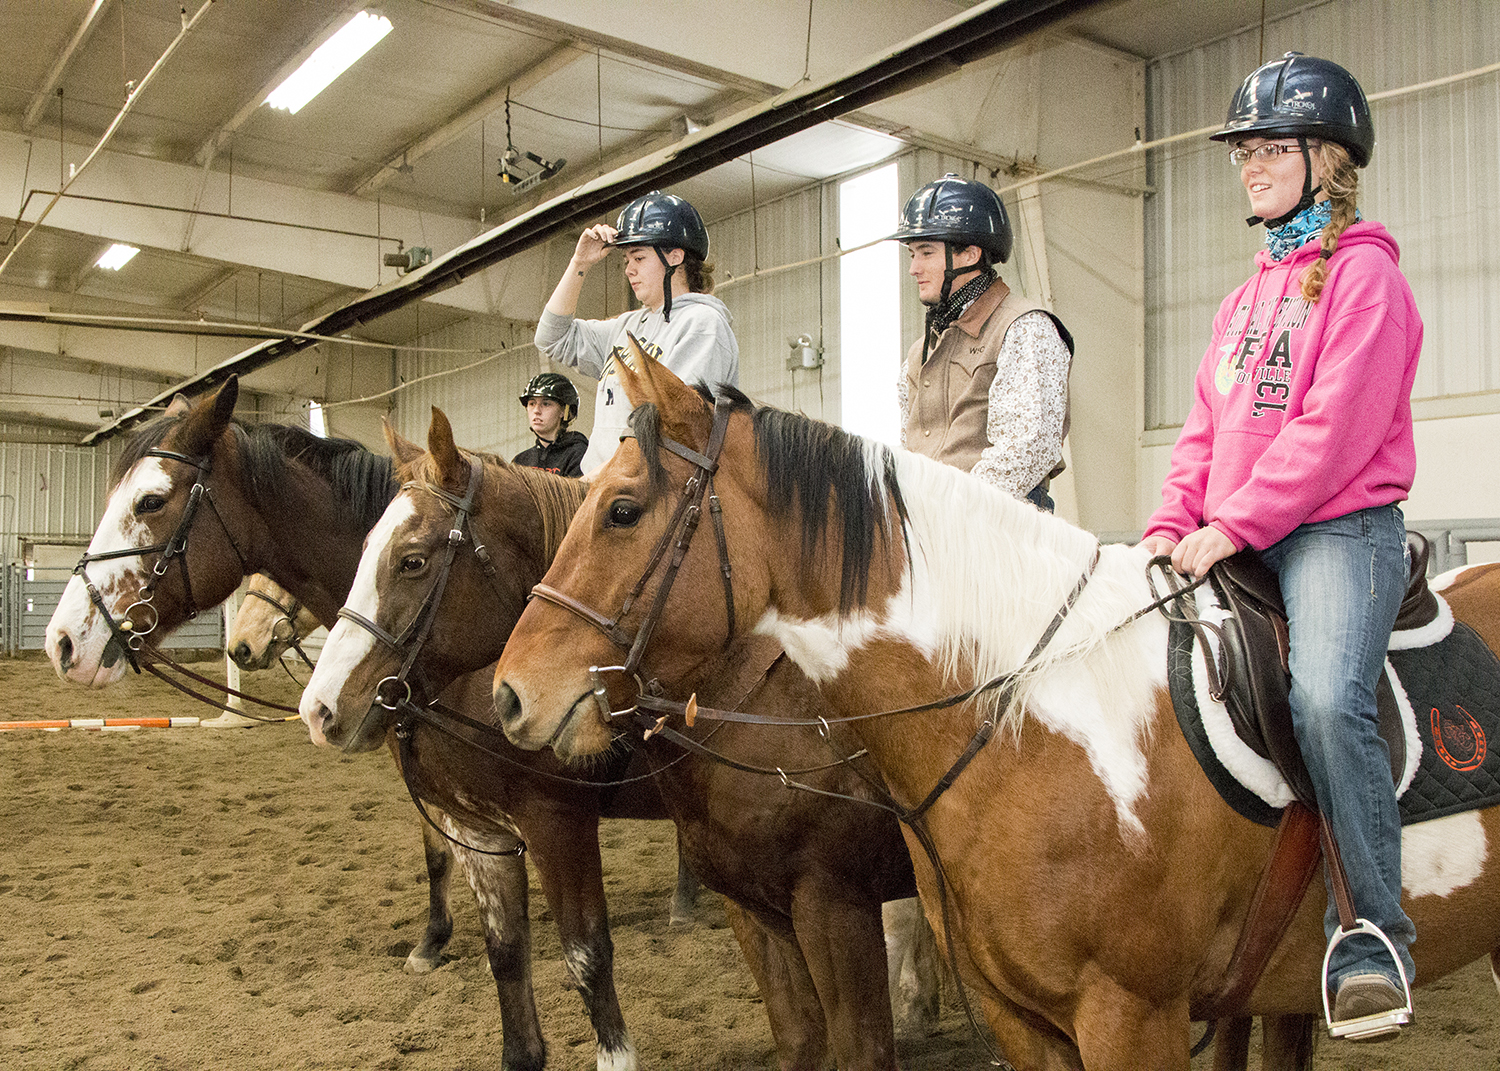 Students on their horses in the equine center